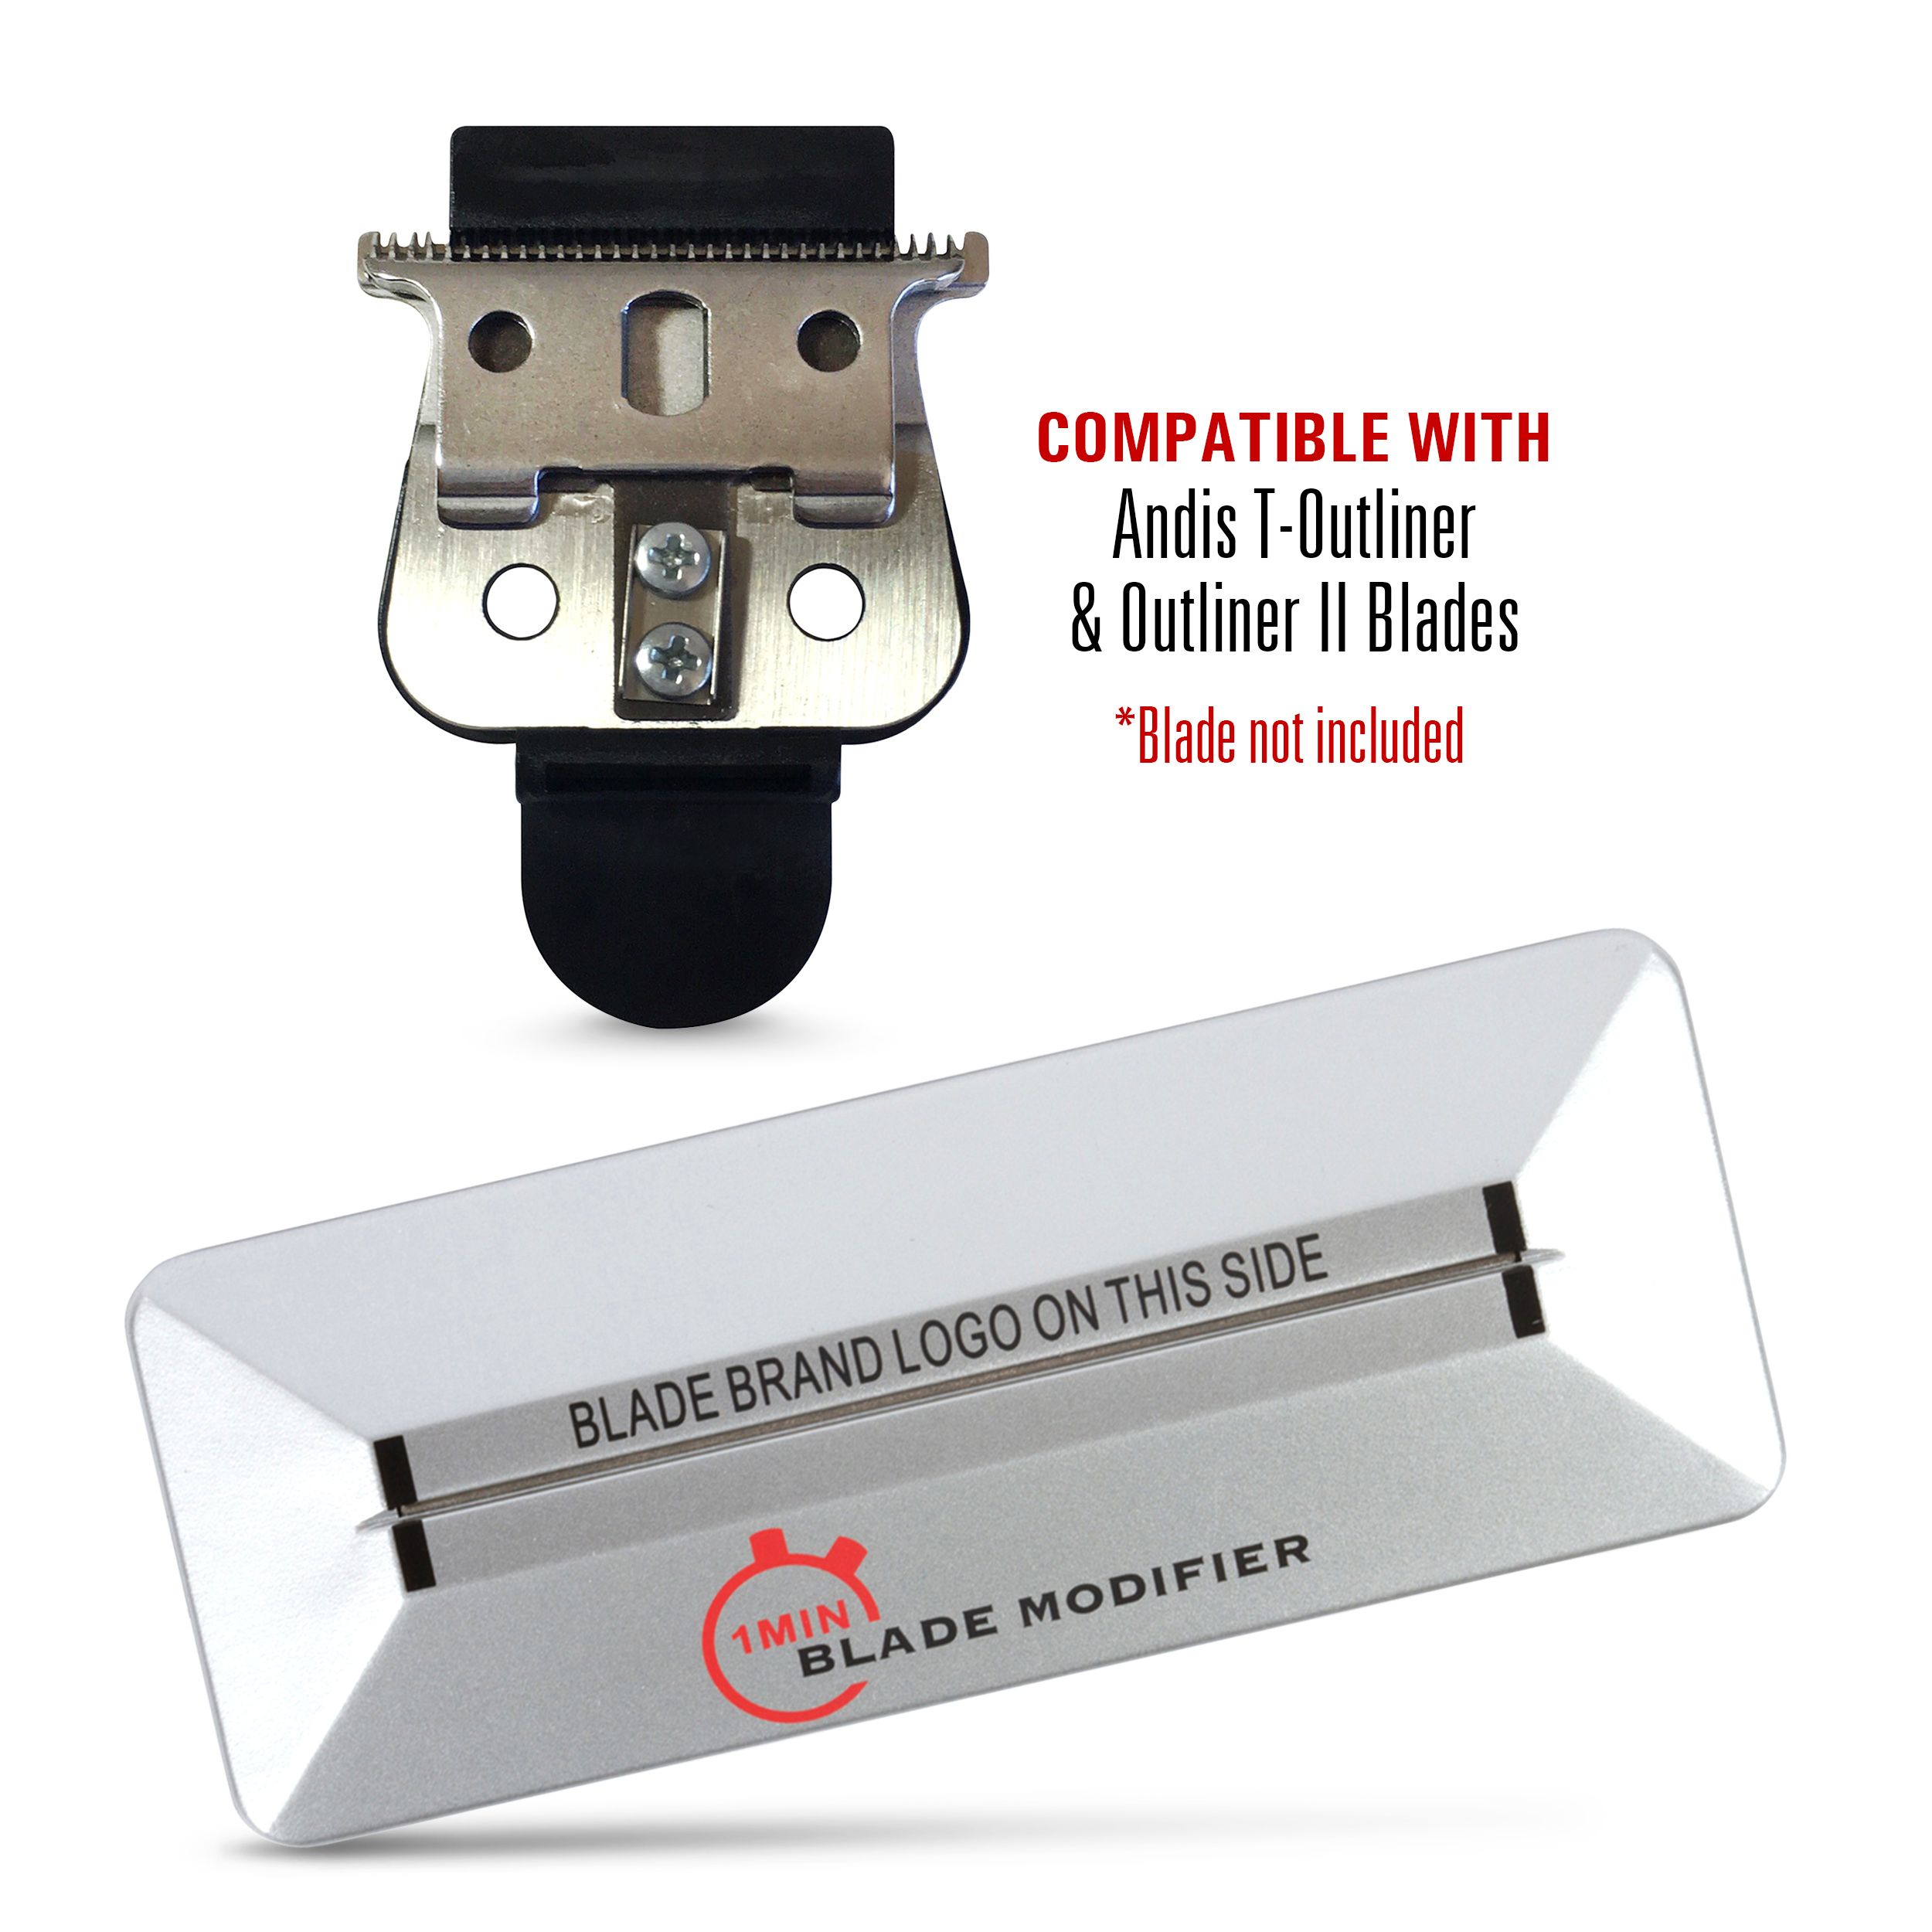 1 Min Blade Modifier and 10 Sec Blade Setter Combo Set | On The Money Zero Gap Tool Compatible with Andis T OUTLINER Blades | The Key to The Sharpest Lines and Closest Shaves | by The Rich Barber